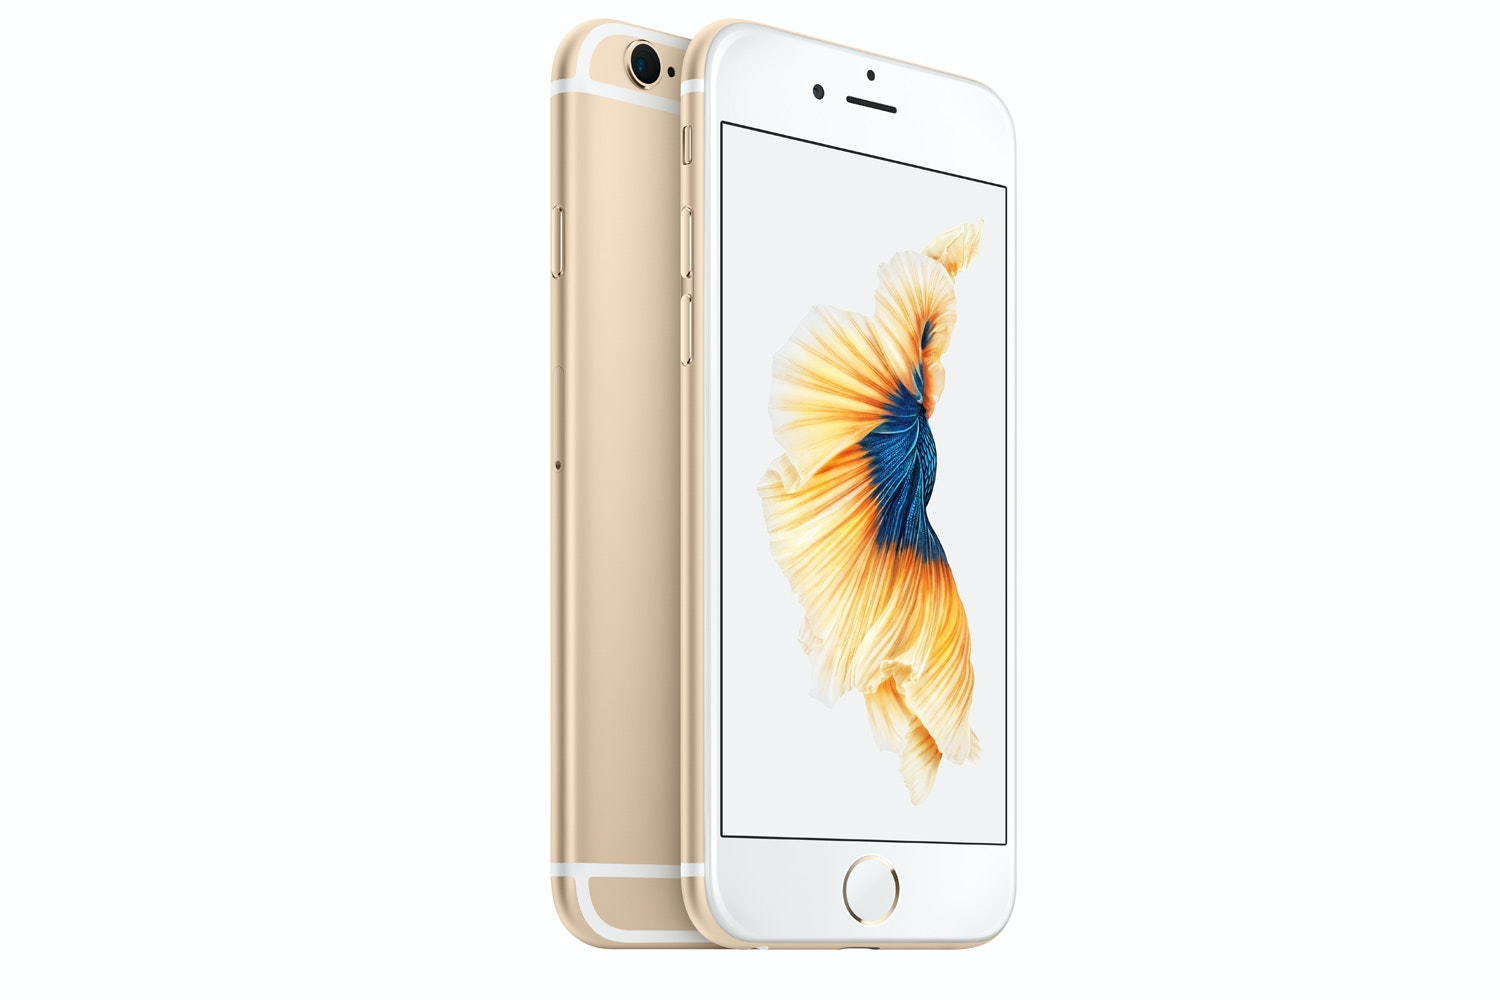 Mint+ Premium iPhone 6S | 16GB | Gold